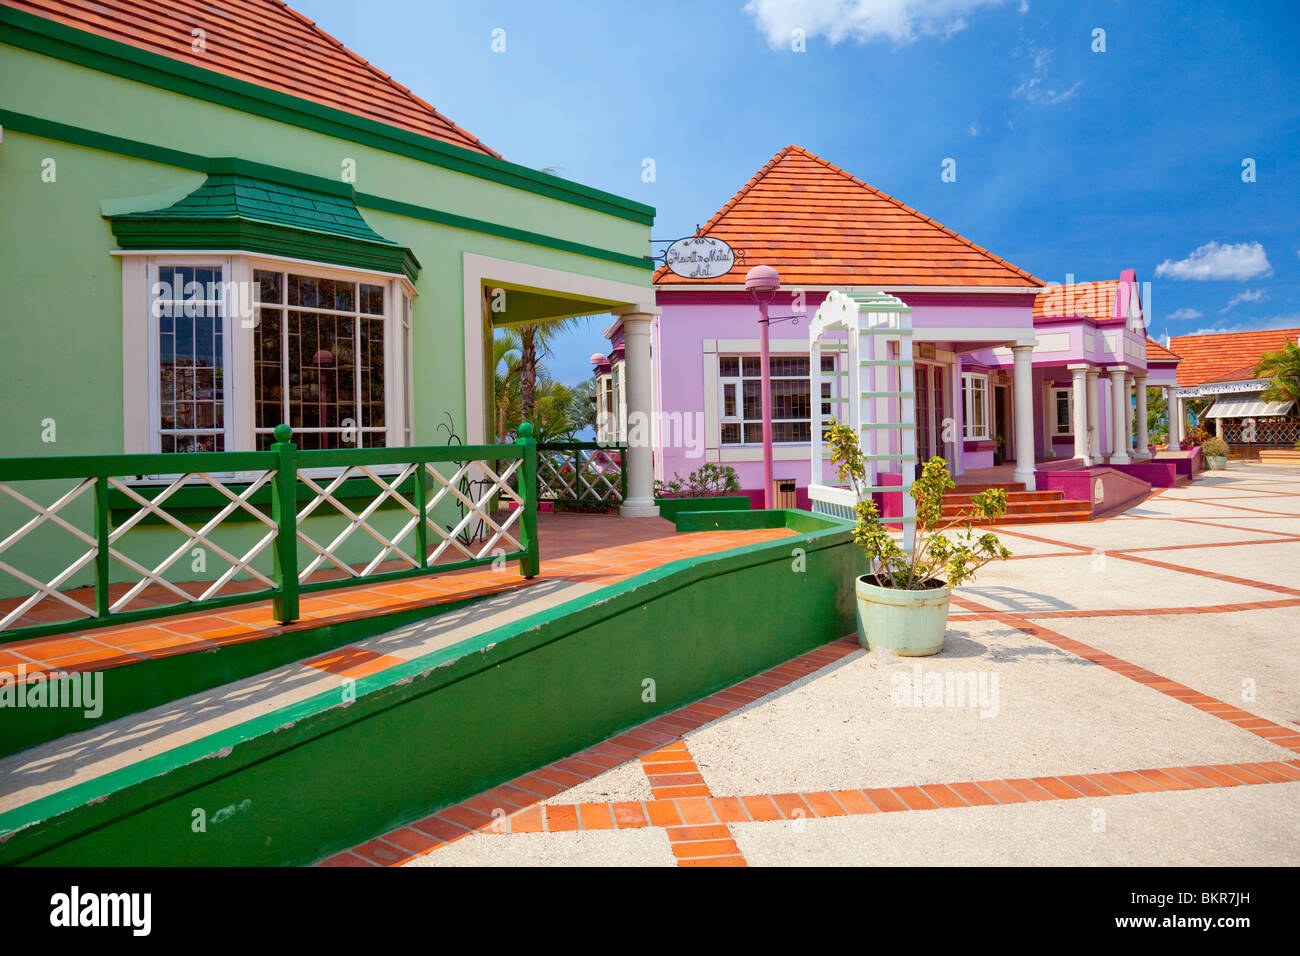 The Pelican Craft Center shopping complex near Bridgetown, Barbados, West Indies. - Stock Image